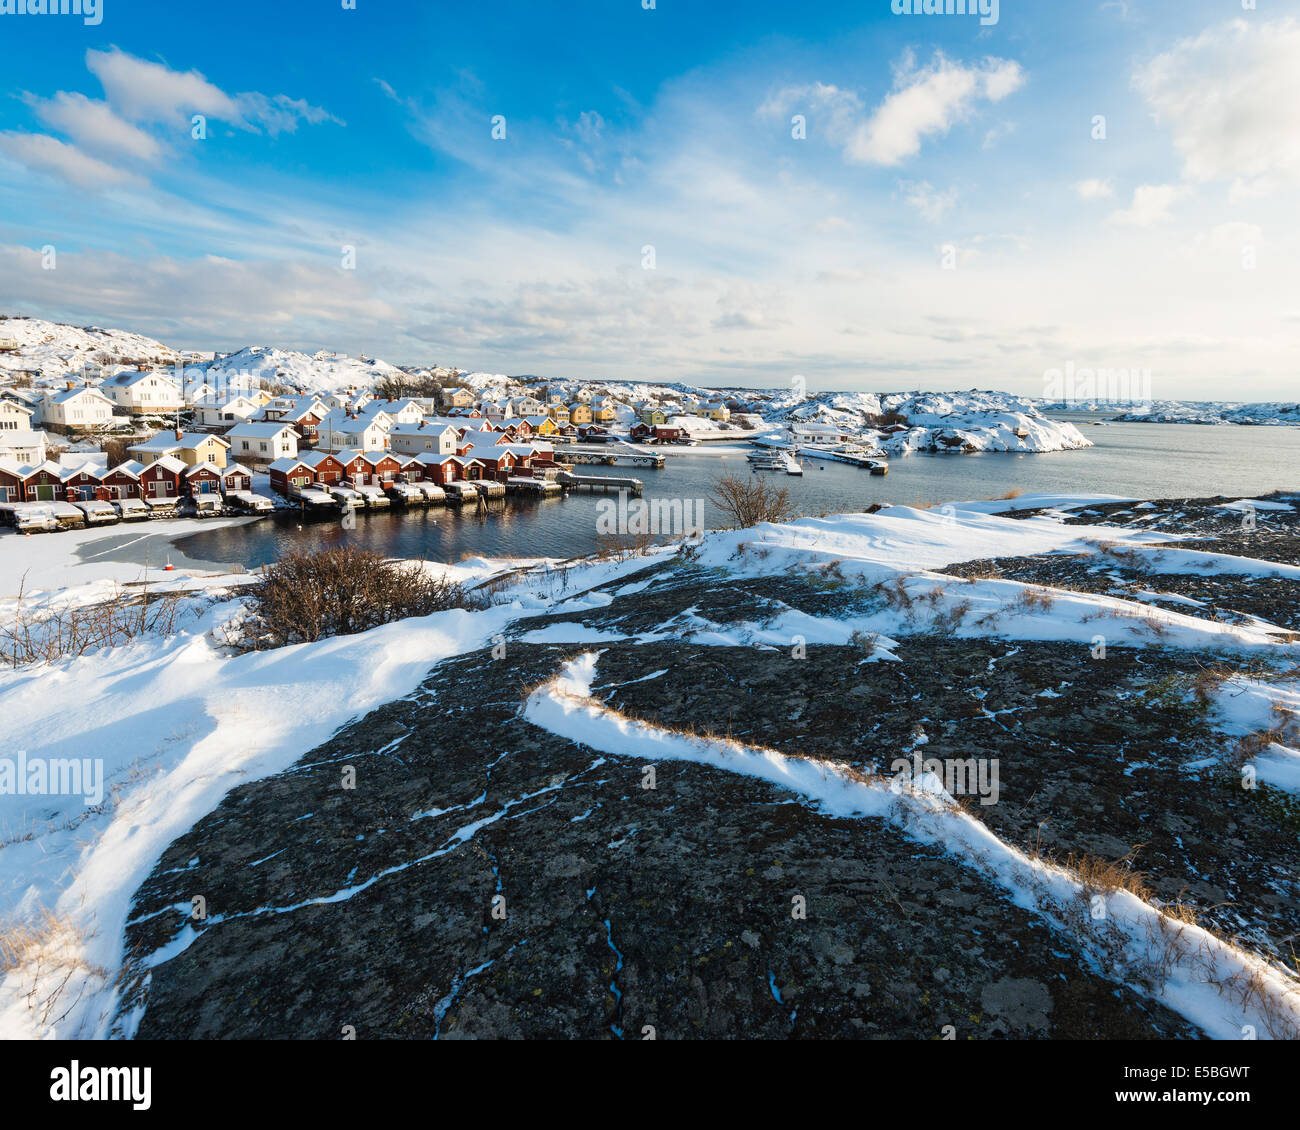 Houses at the coast in winter season, Sweden. - Stock Image